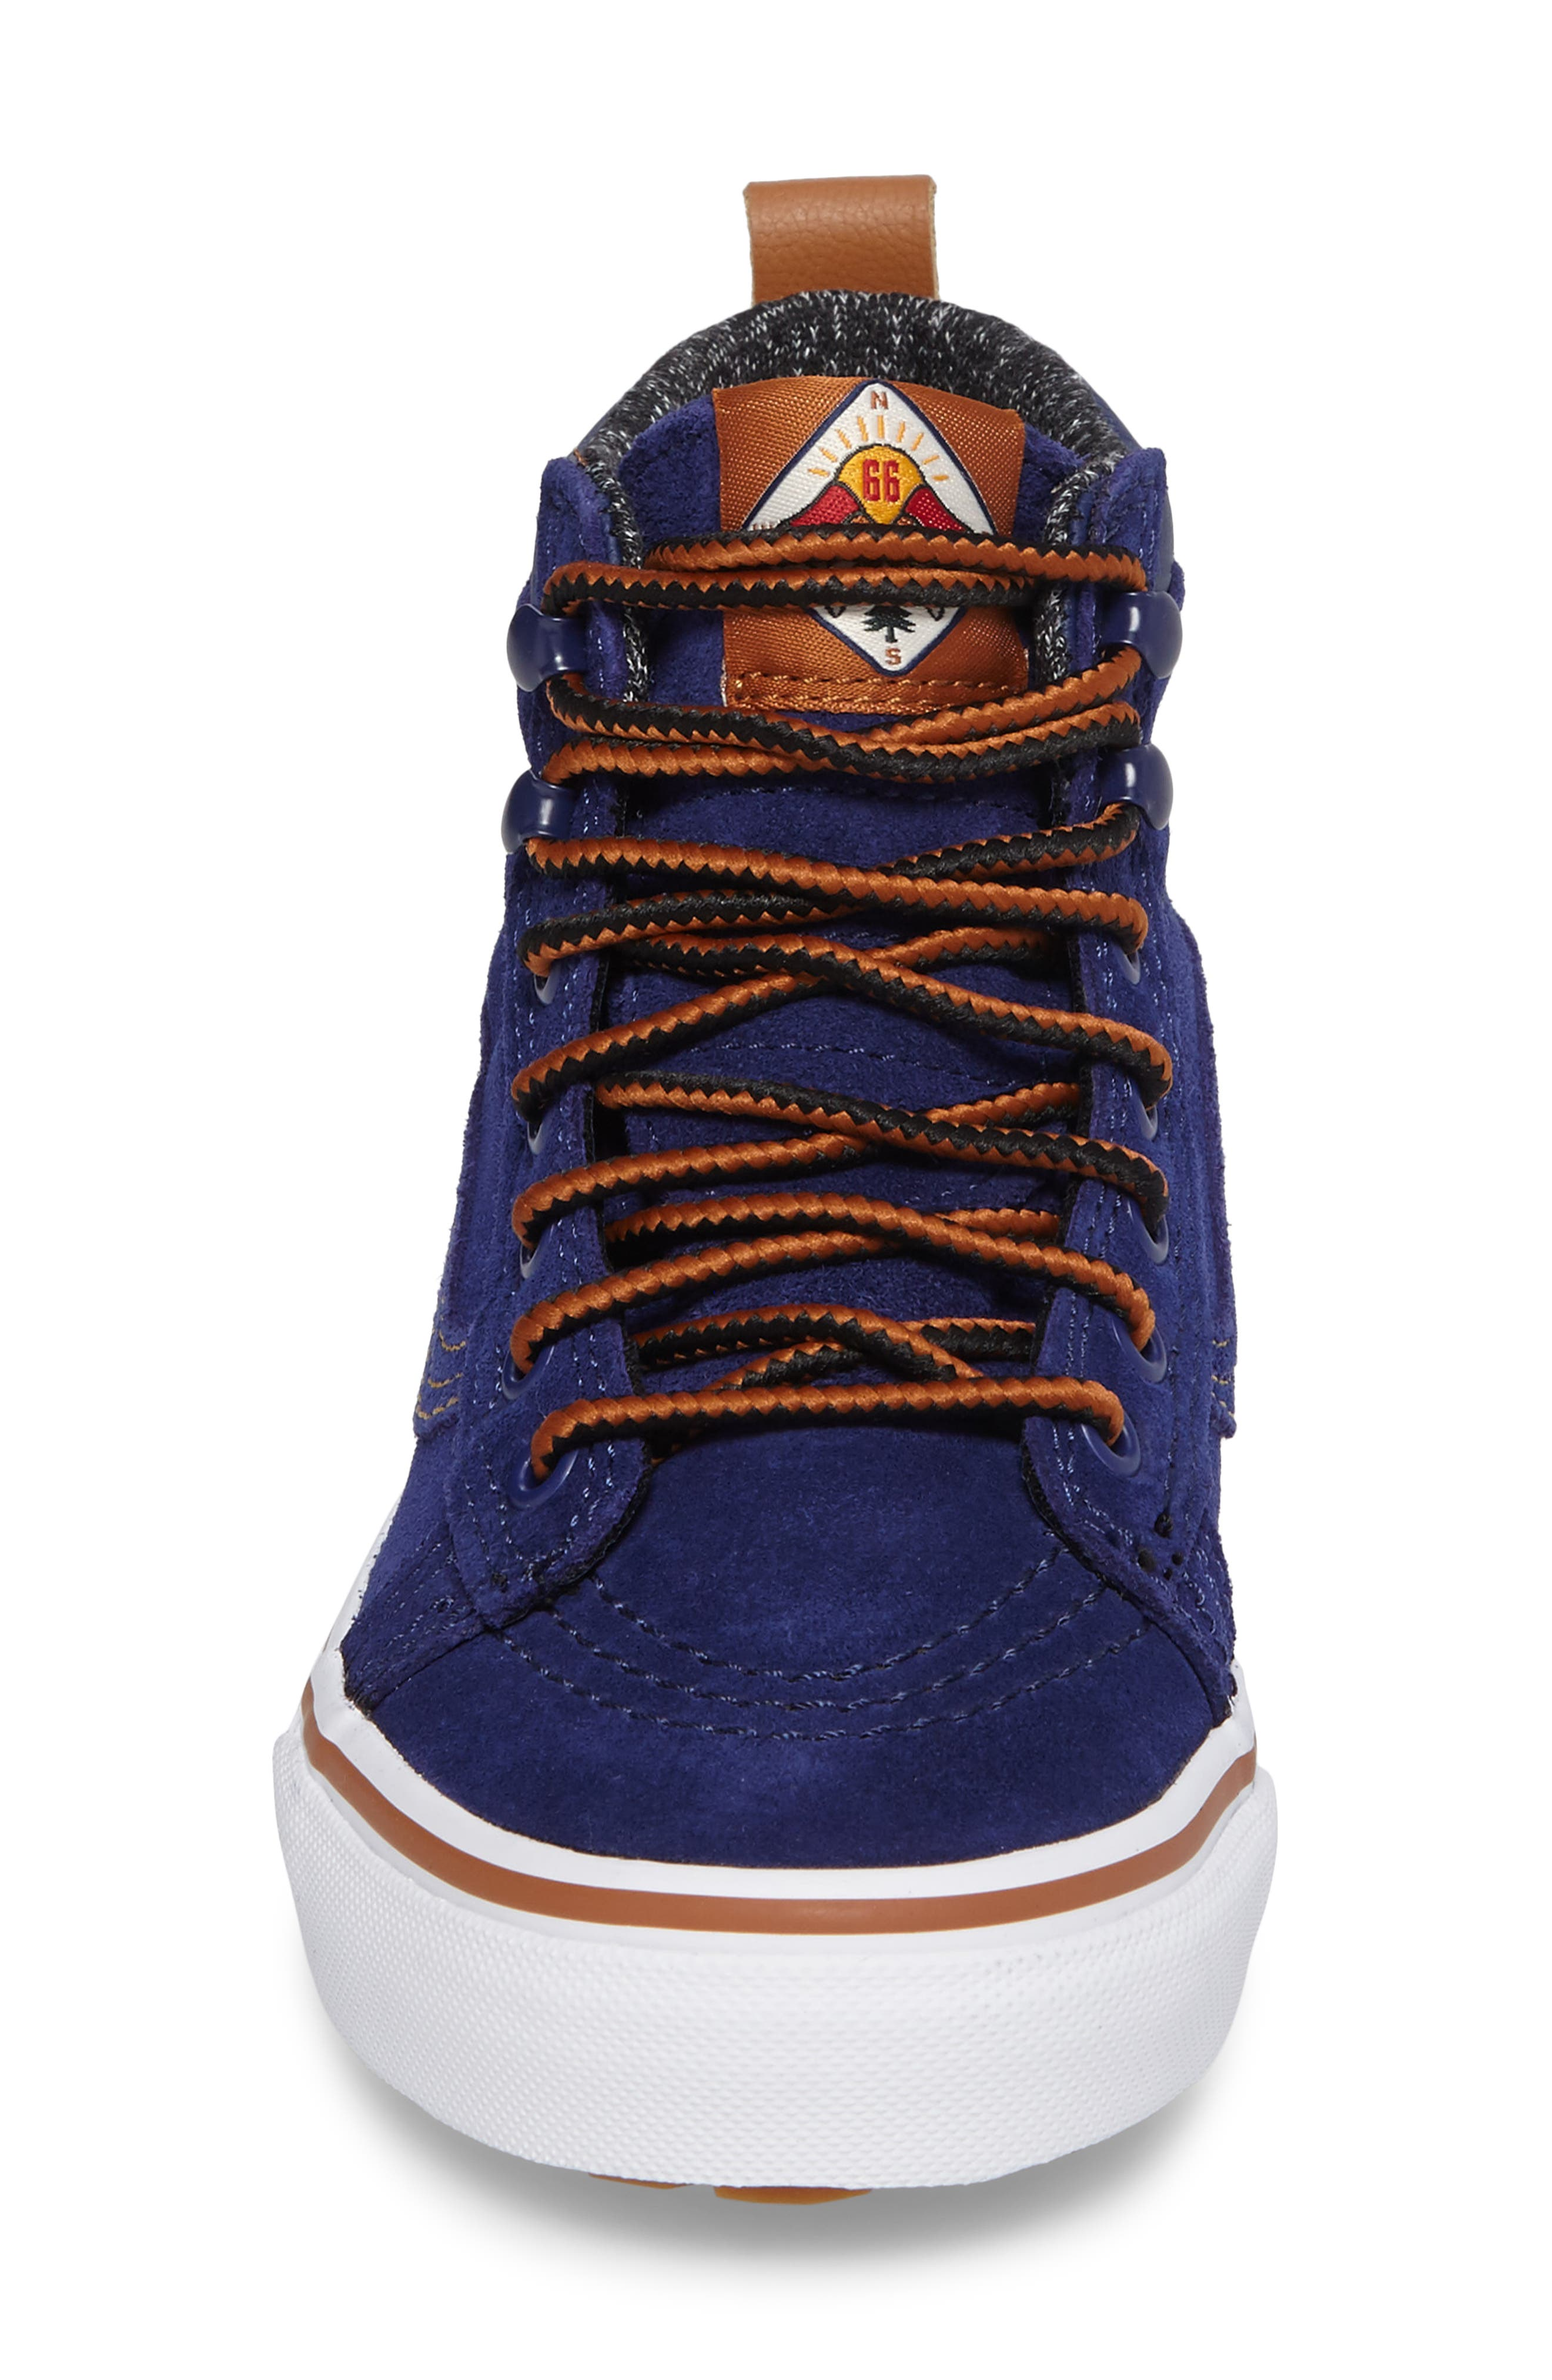 SK8-Hi Sneaker,                             Alternate thumbnail 33, color,